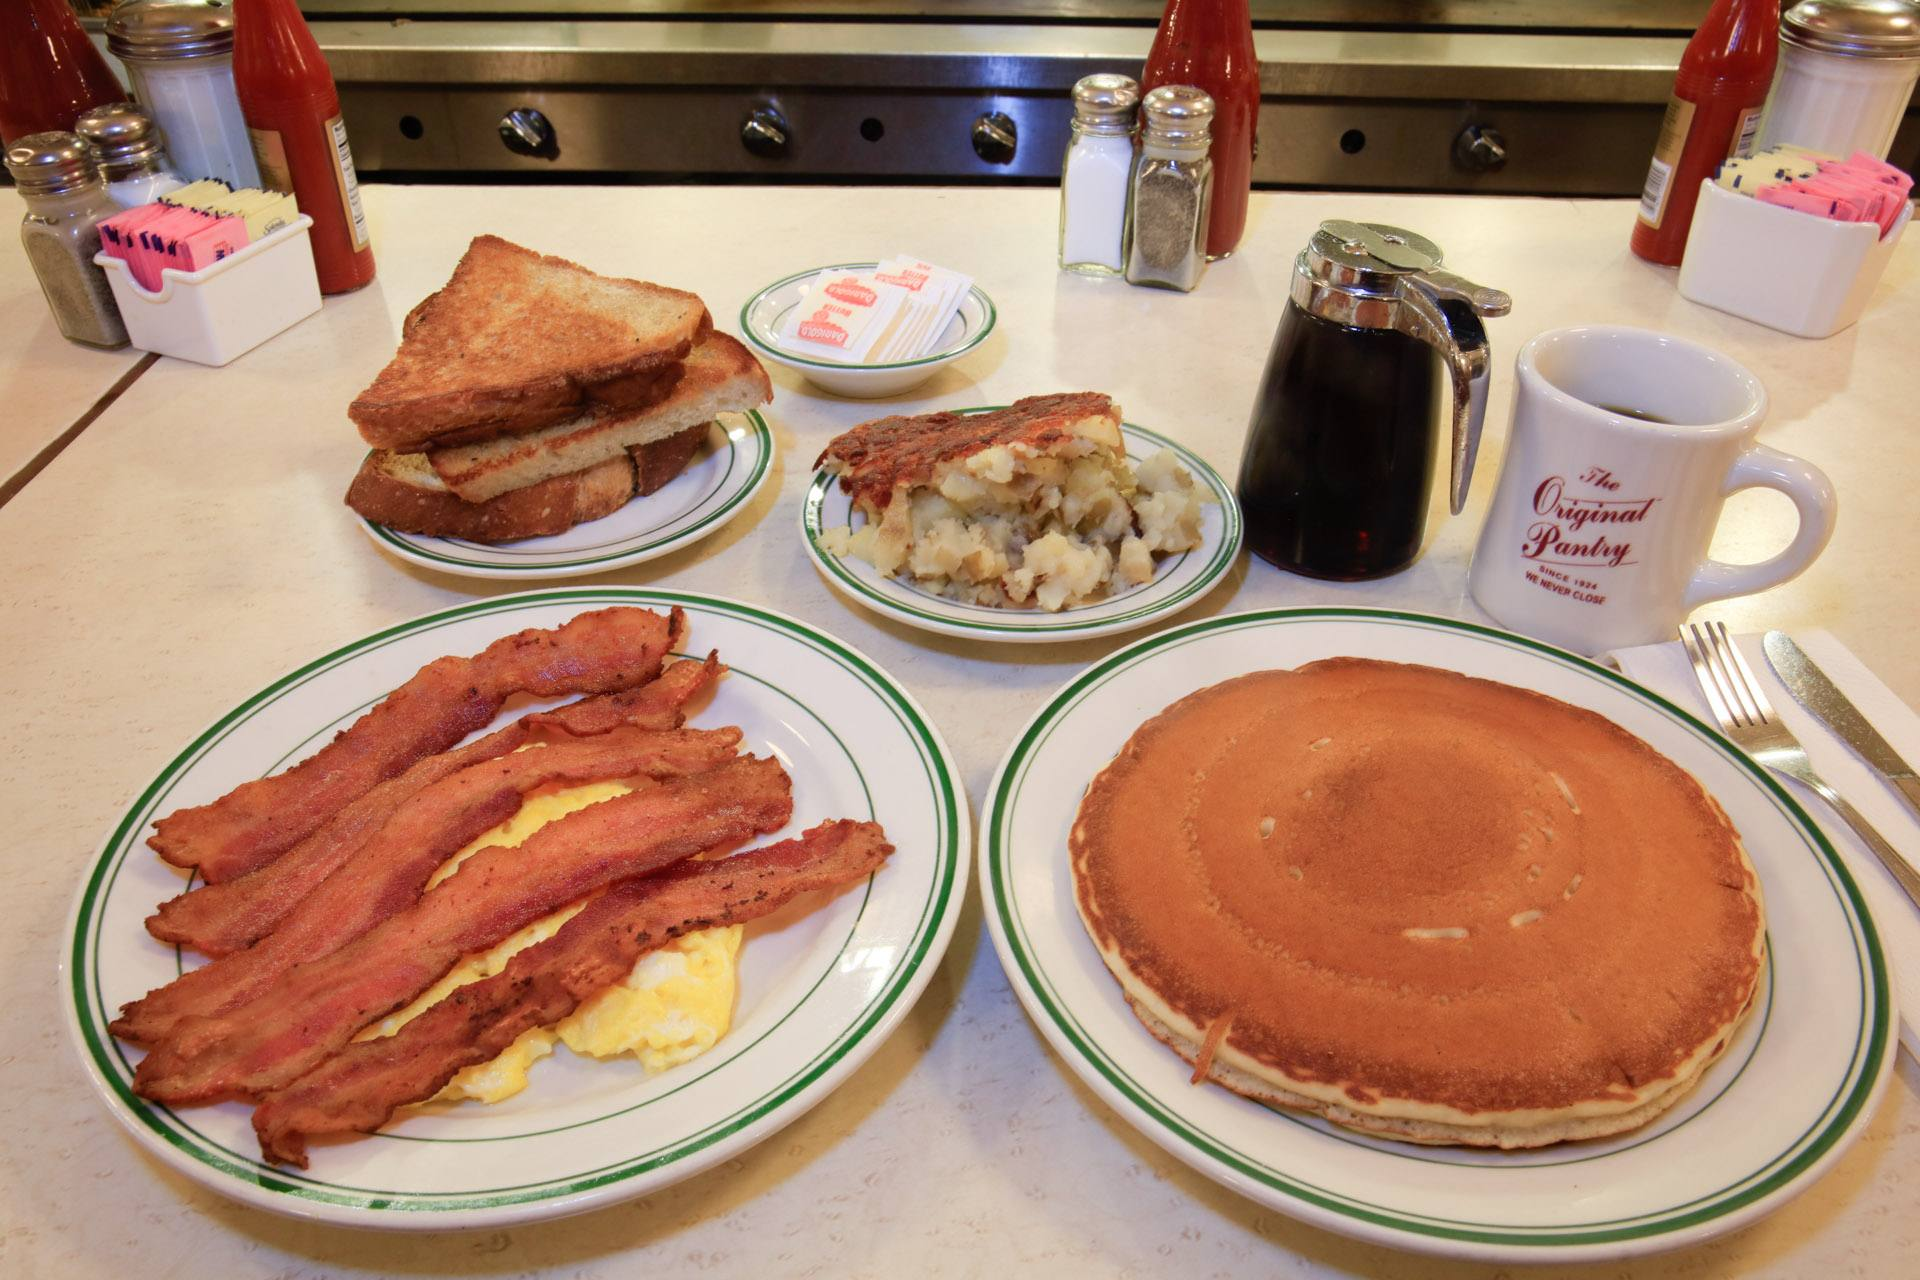 Pancakes, bacon & eggs at The Original Pantry